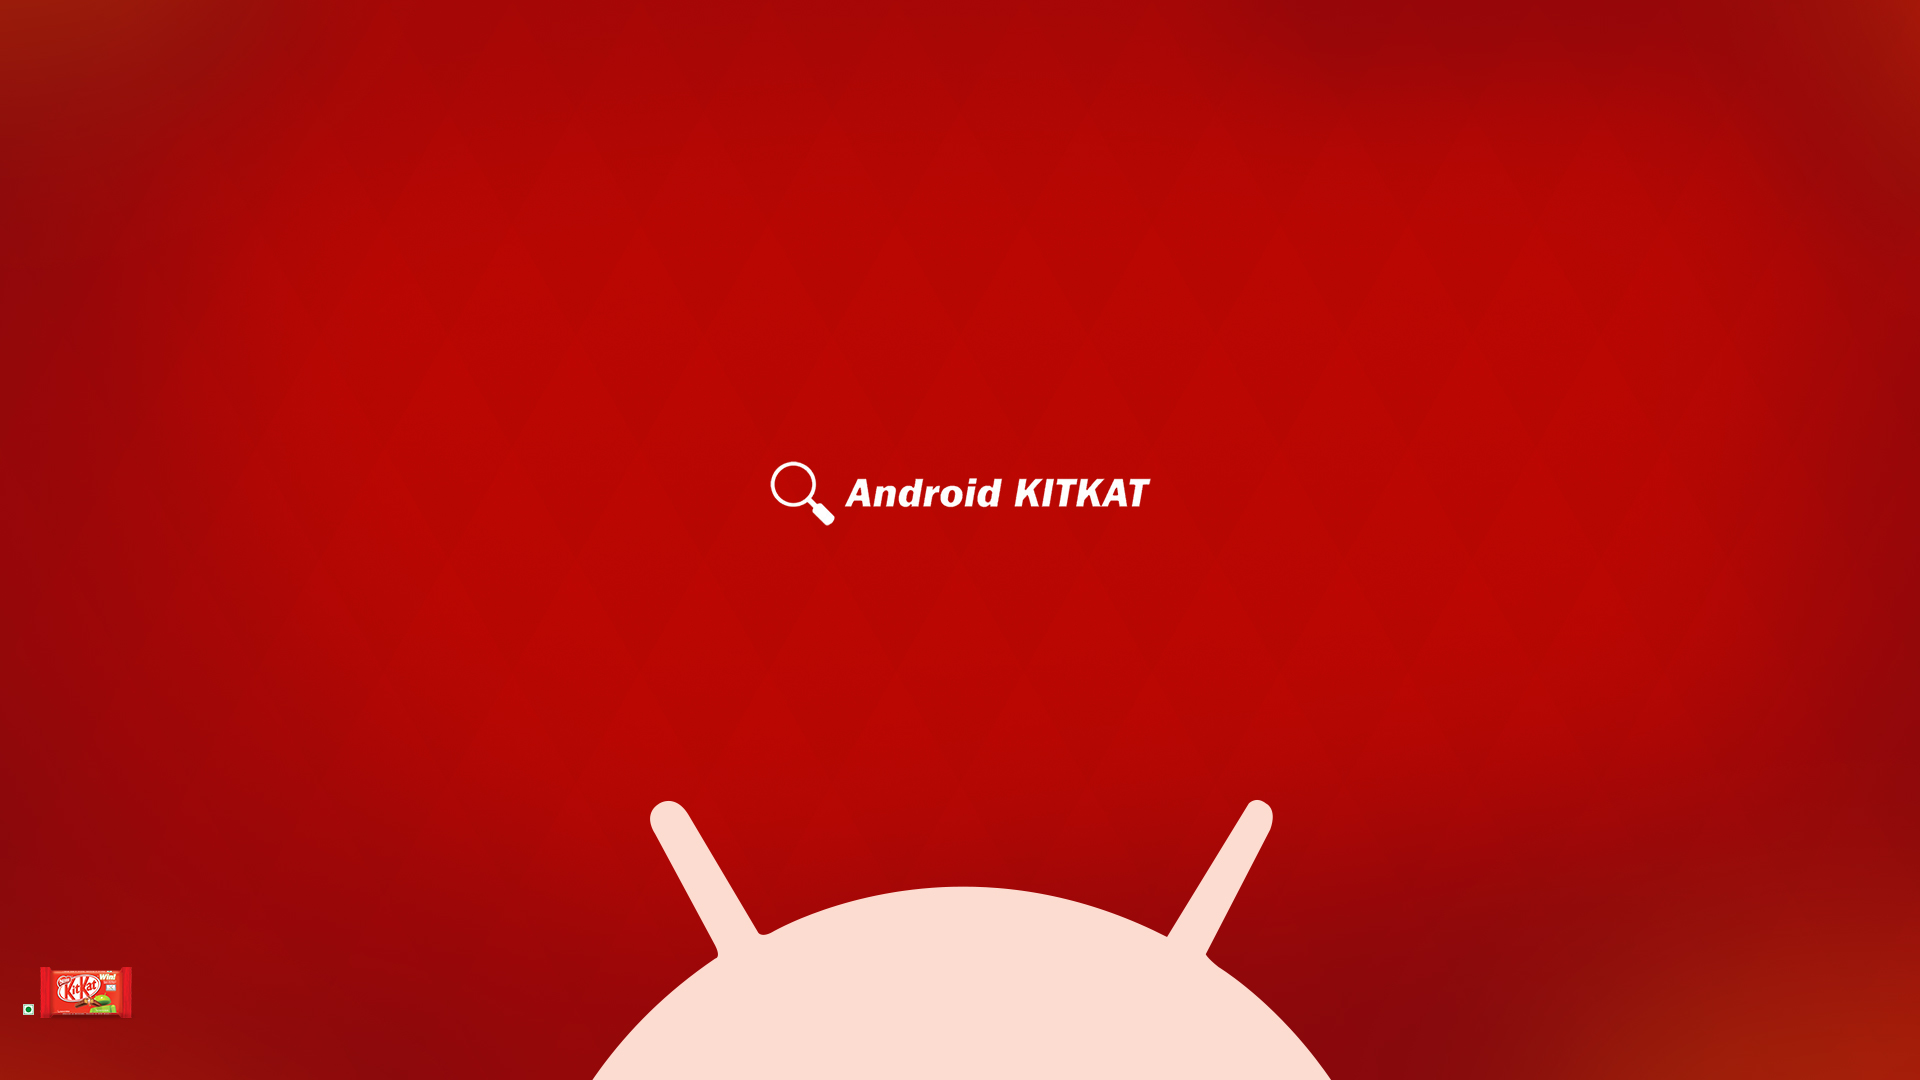 Android 44 kitkat wallpapers method of tried kitkatwall2 voltagebd Choice Image